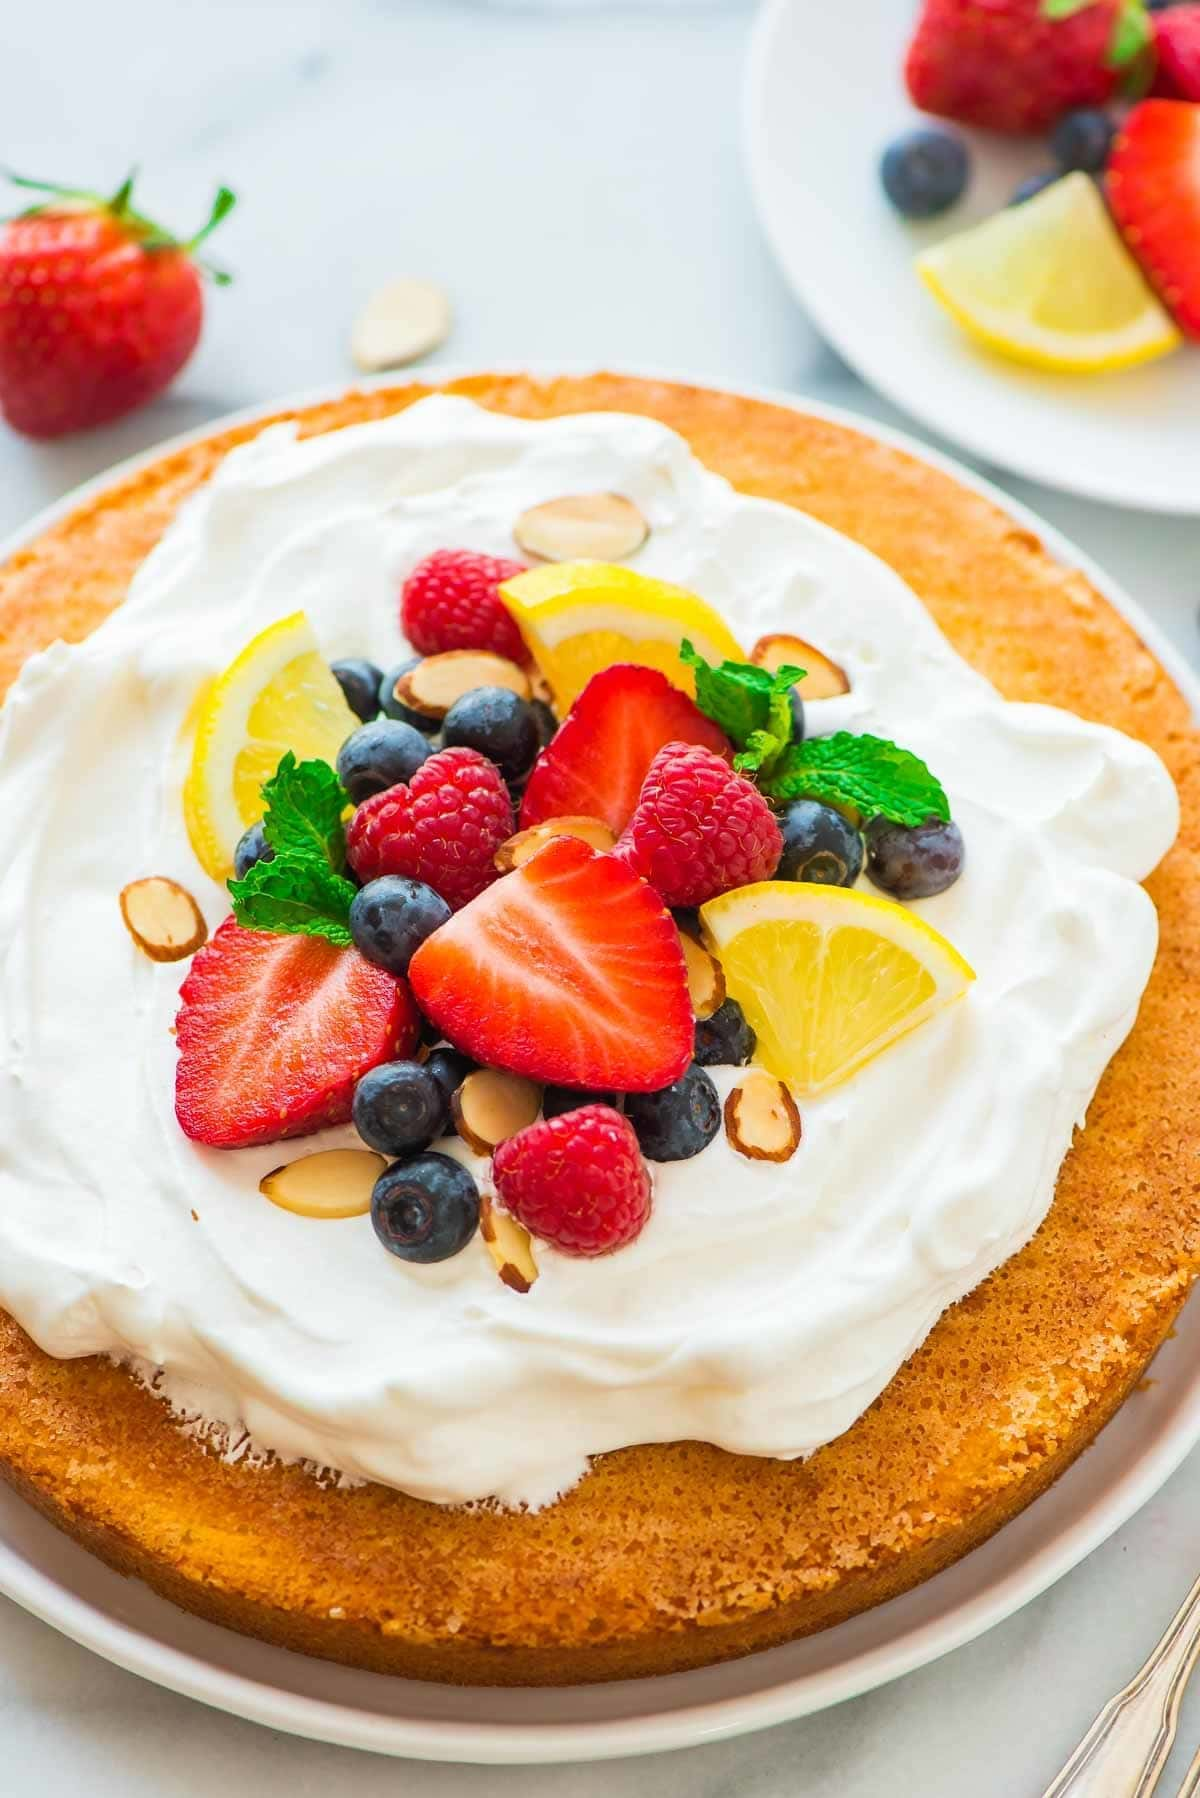 Flourless Lemon Almond Cake with Fresh Berries – a light, fluffy, and gluten free dessert made with almond flour, eggs, and sugar. Simple, low carb, and perfect for any holiday or party! Recipe at wellplated.com | @wellplated